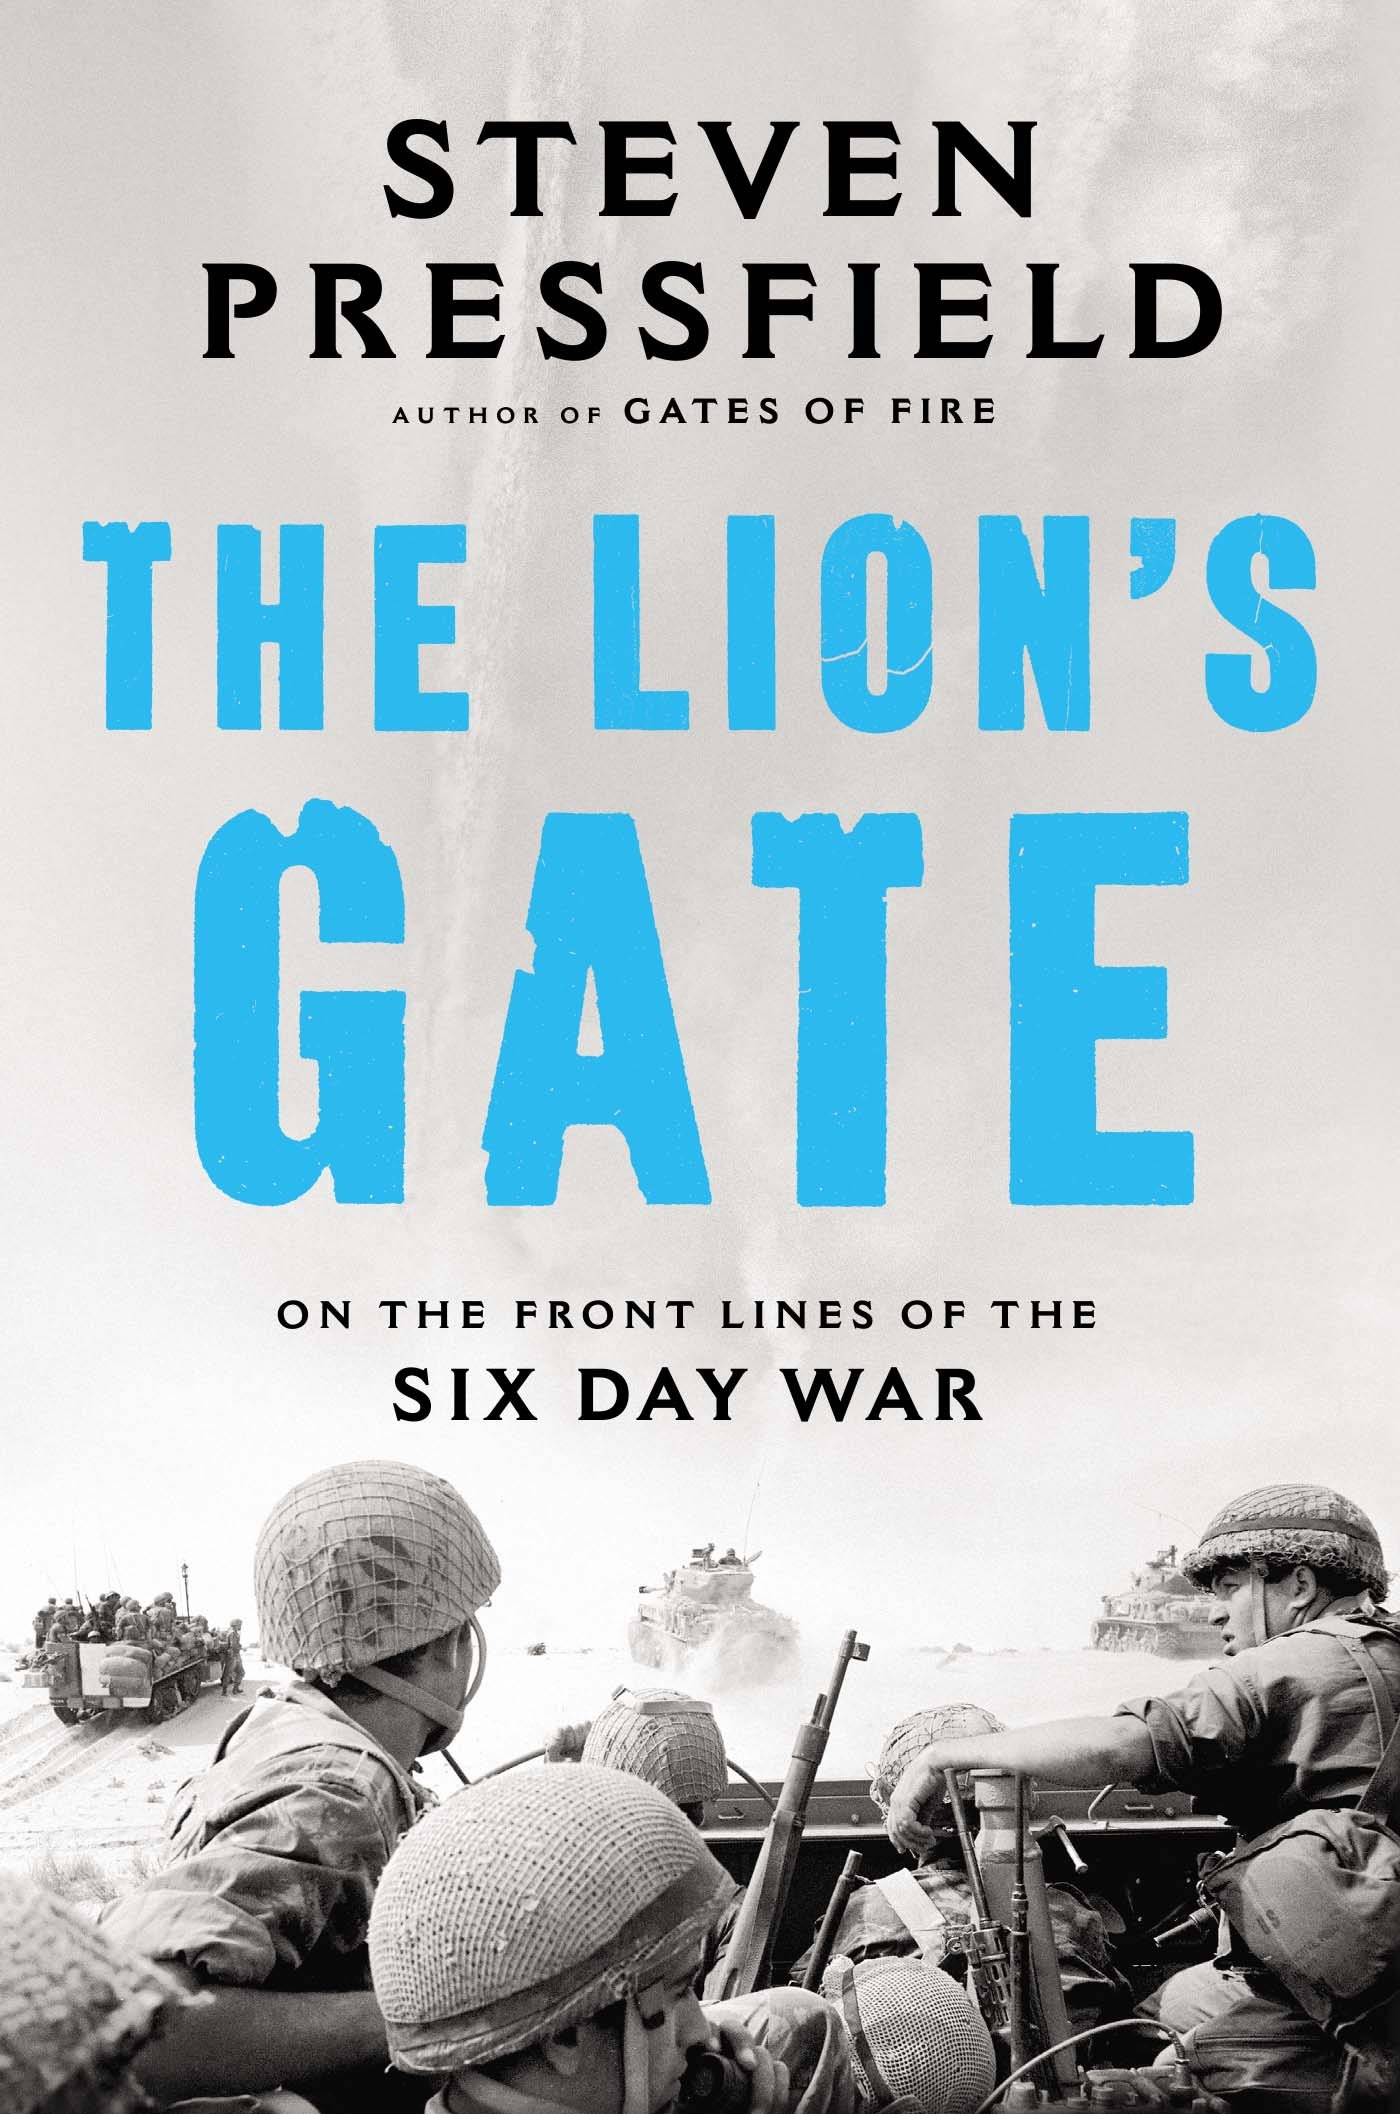 the lion s gate on the front lines of the six day war steven  the lion s gate on the front lines of the six day war steven pressfield 9781595230911 books ca